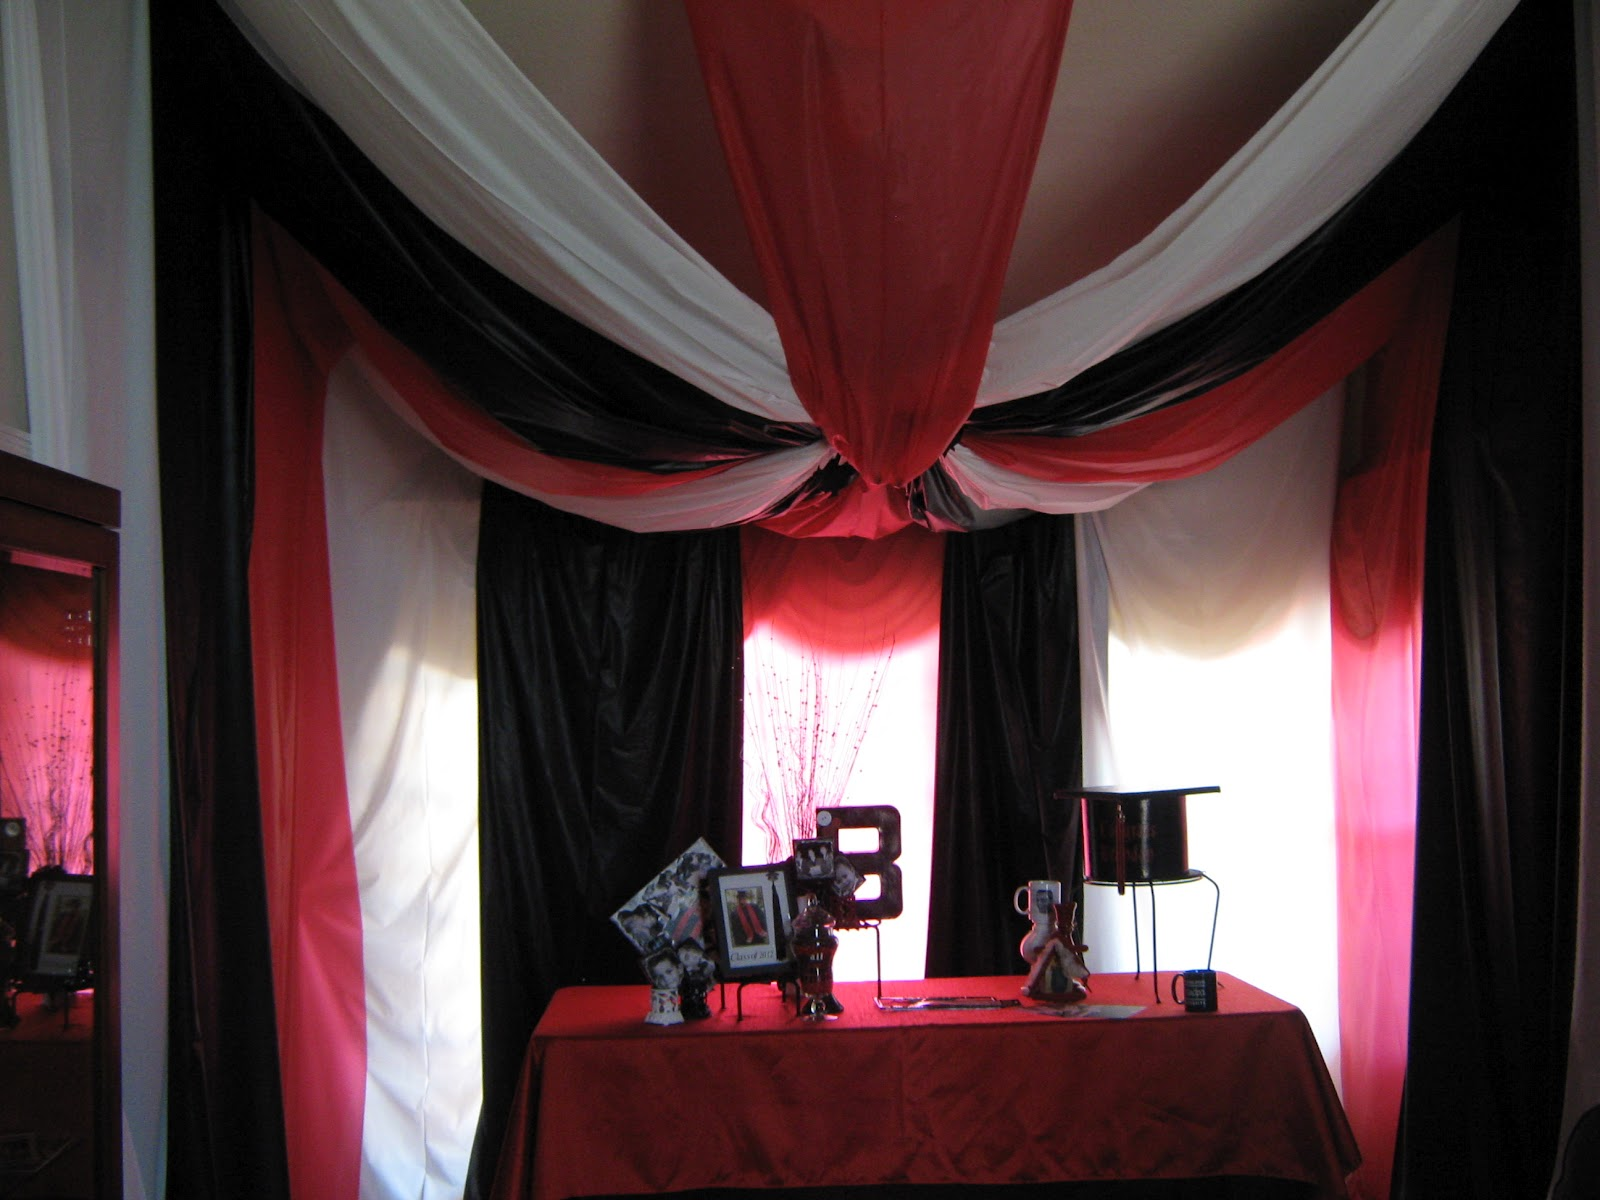 Artistic Black And White Decorating Ideas For A Party Acnn Decor